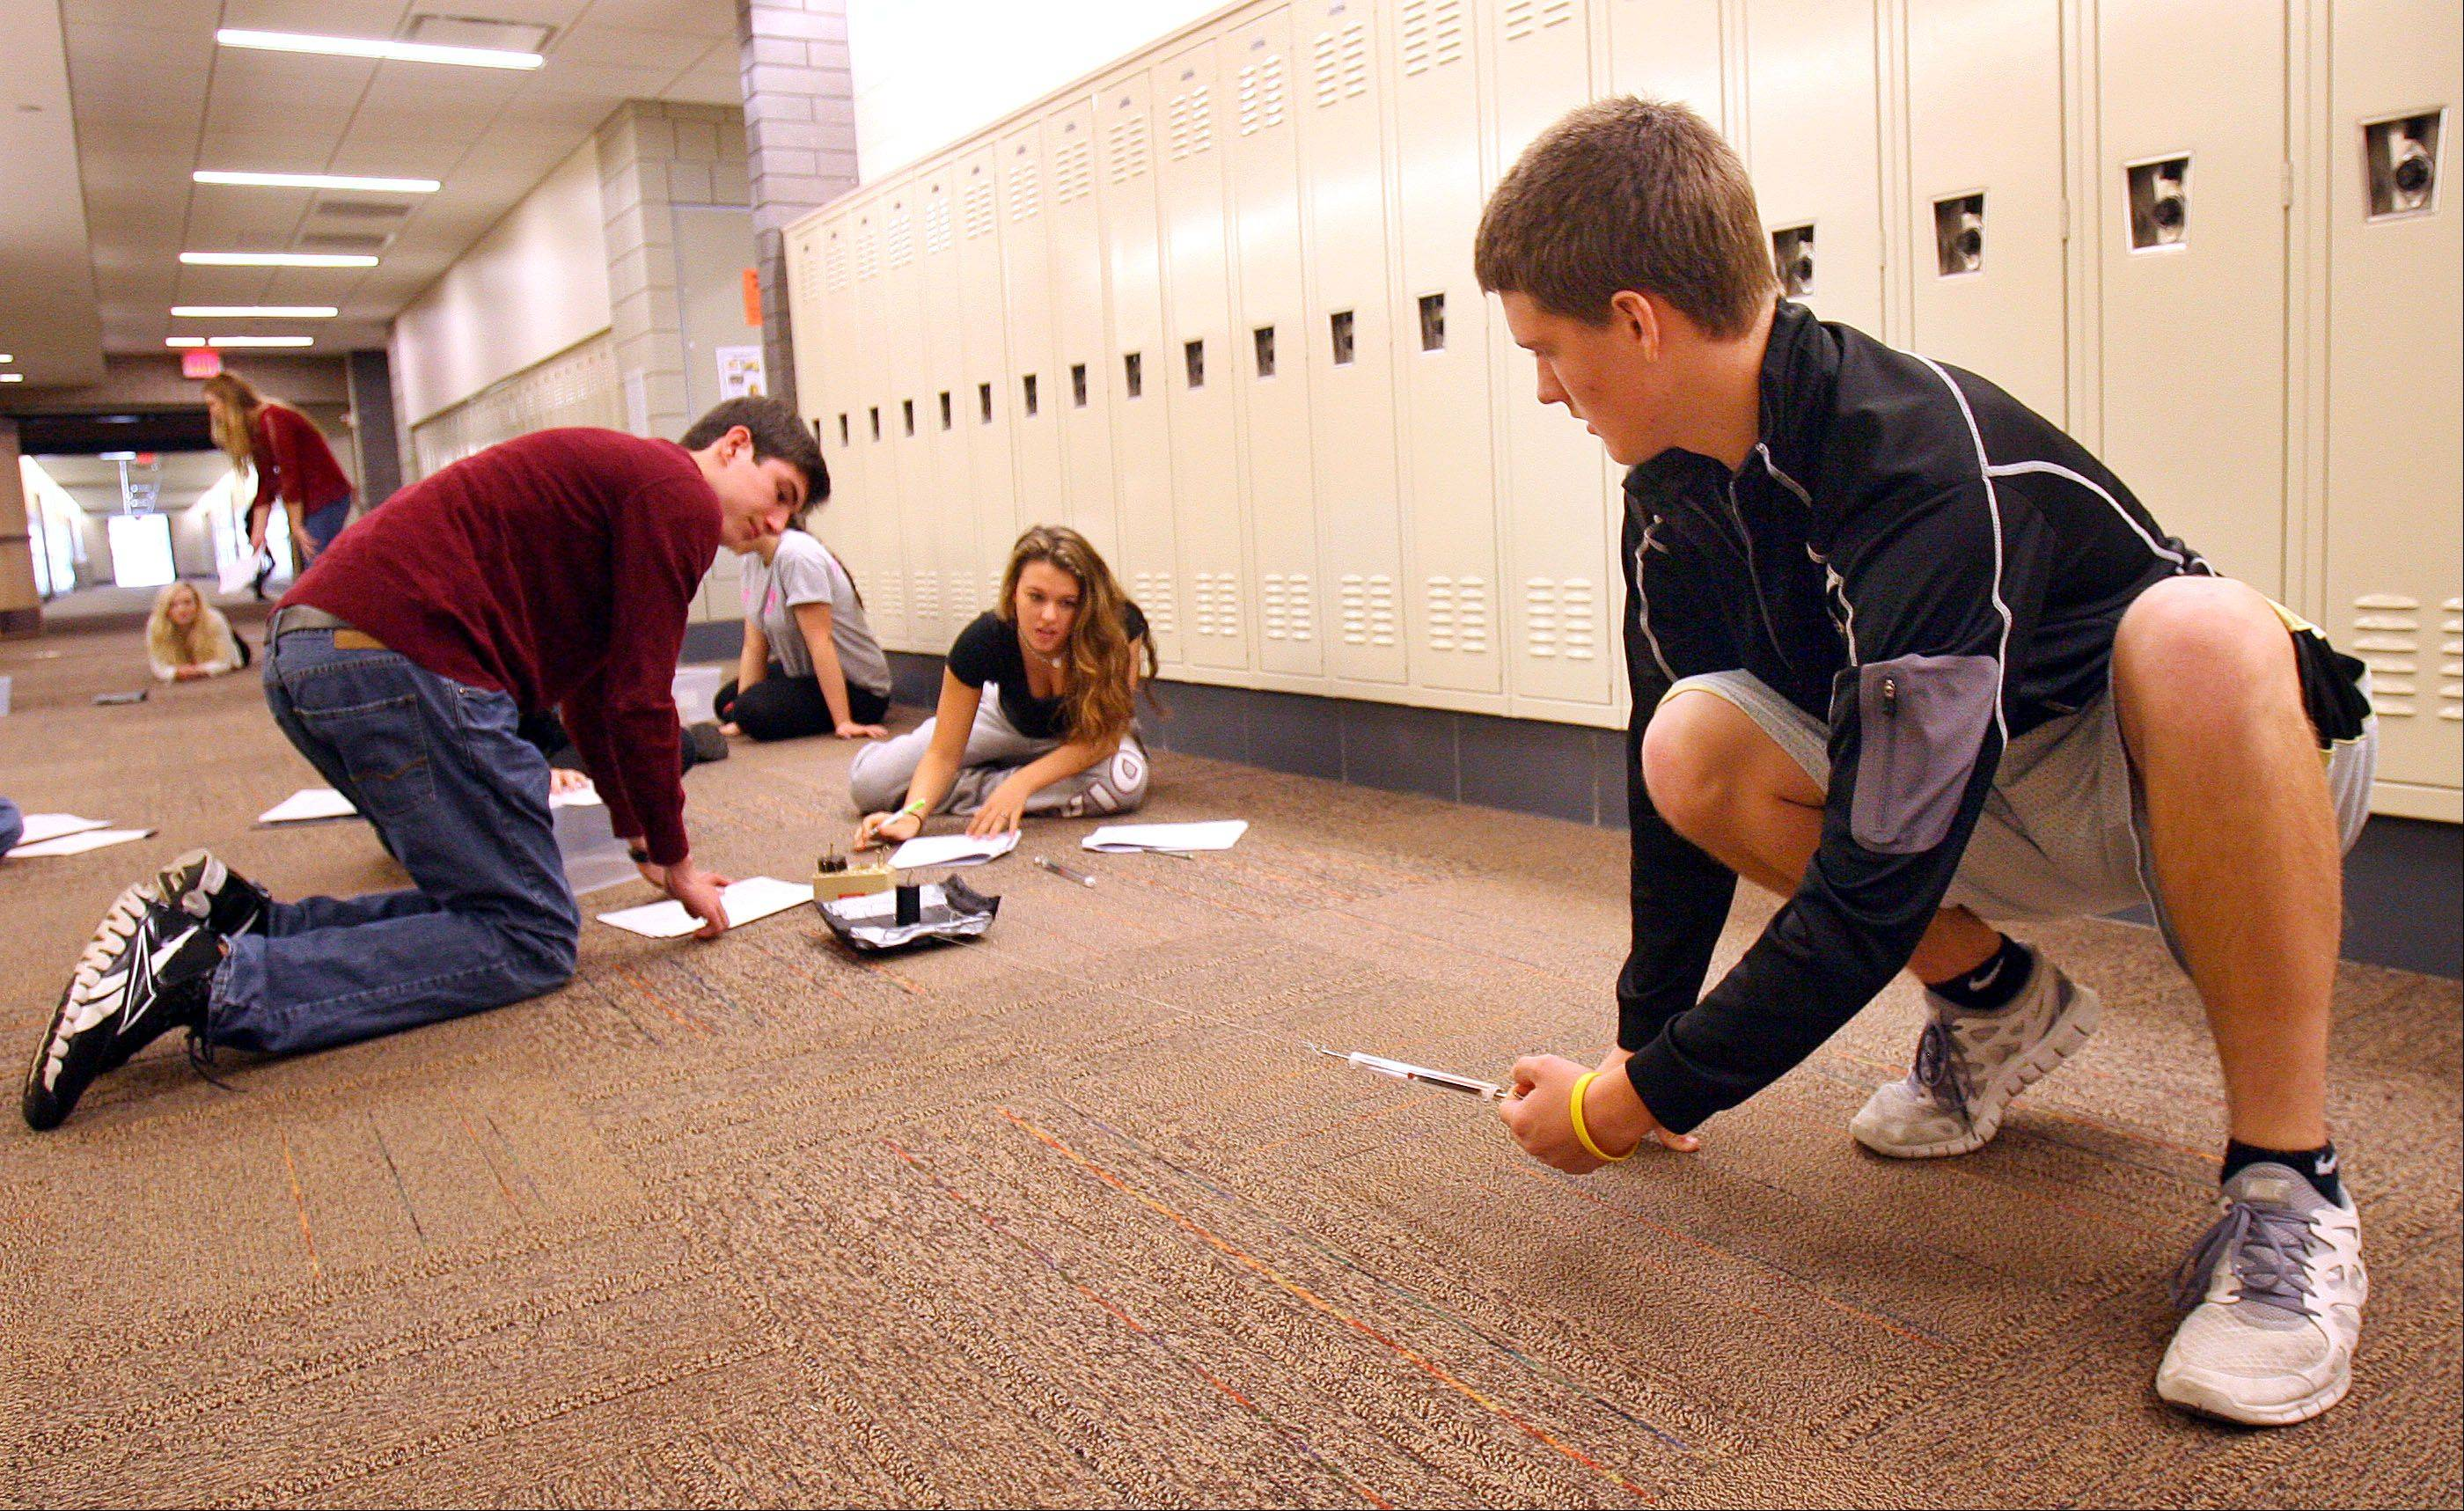 Accelerated physics students Connor Perlin of Kildeer, left, Hayley Wineberg of Buffalo Grove and Joey Traynor of Long Grove conduct an experiment in the hallway at Stevenson High School in Lincolnshire. Stevenson again swept the five academic categories on the annual state report card among 92 suburban high school districts examined by the Daily Herald.